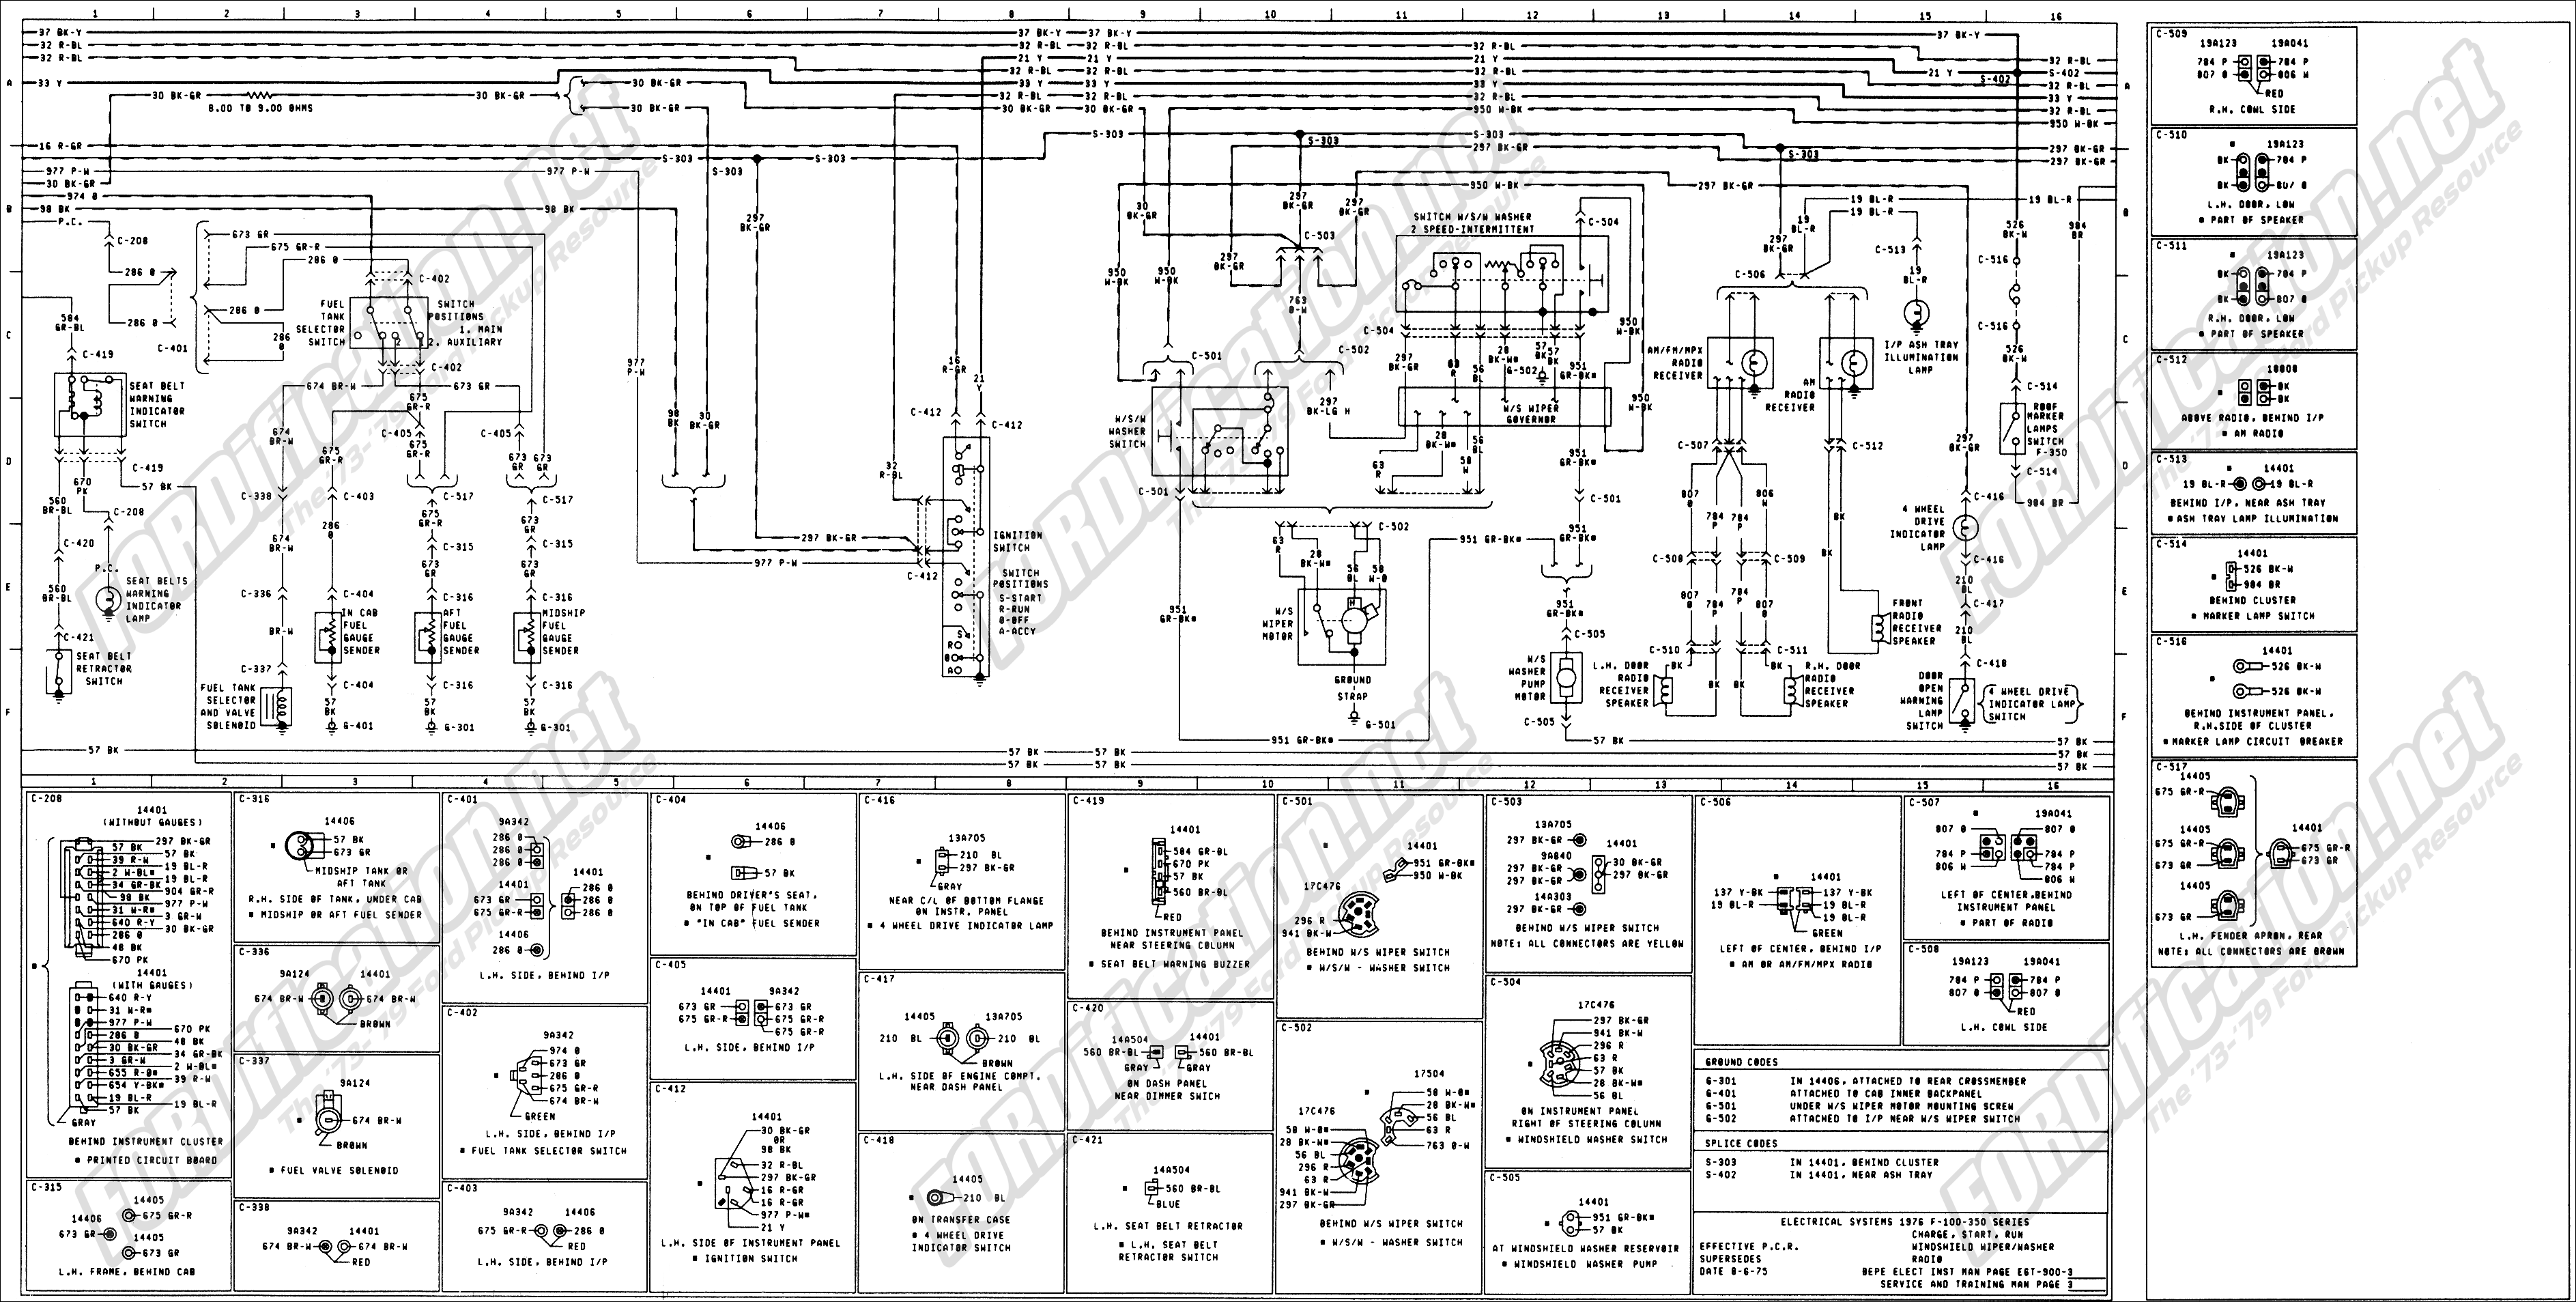 wiring_76master_3of9 ford ranger & bronco ii electrical diagrams at the ranger station 1979 ford escort wiring diagram at n-0.co